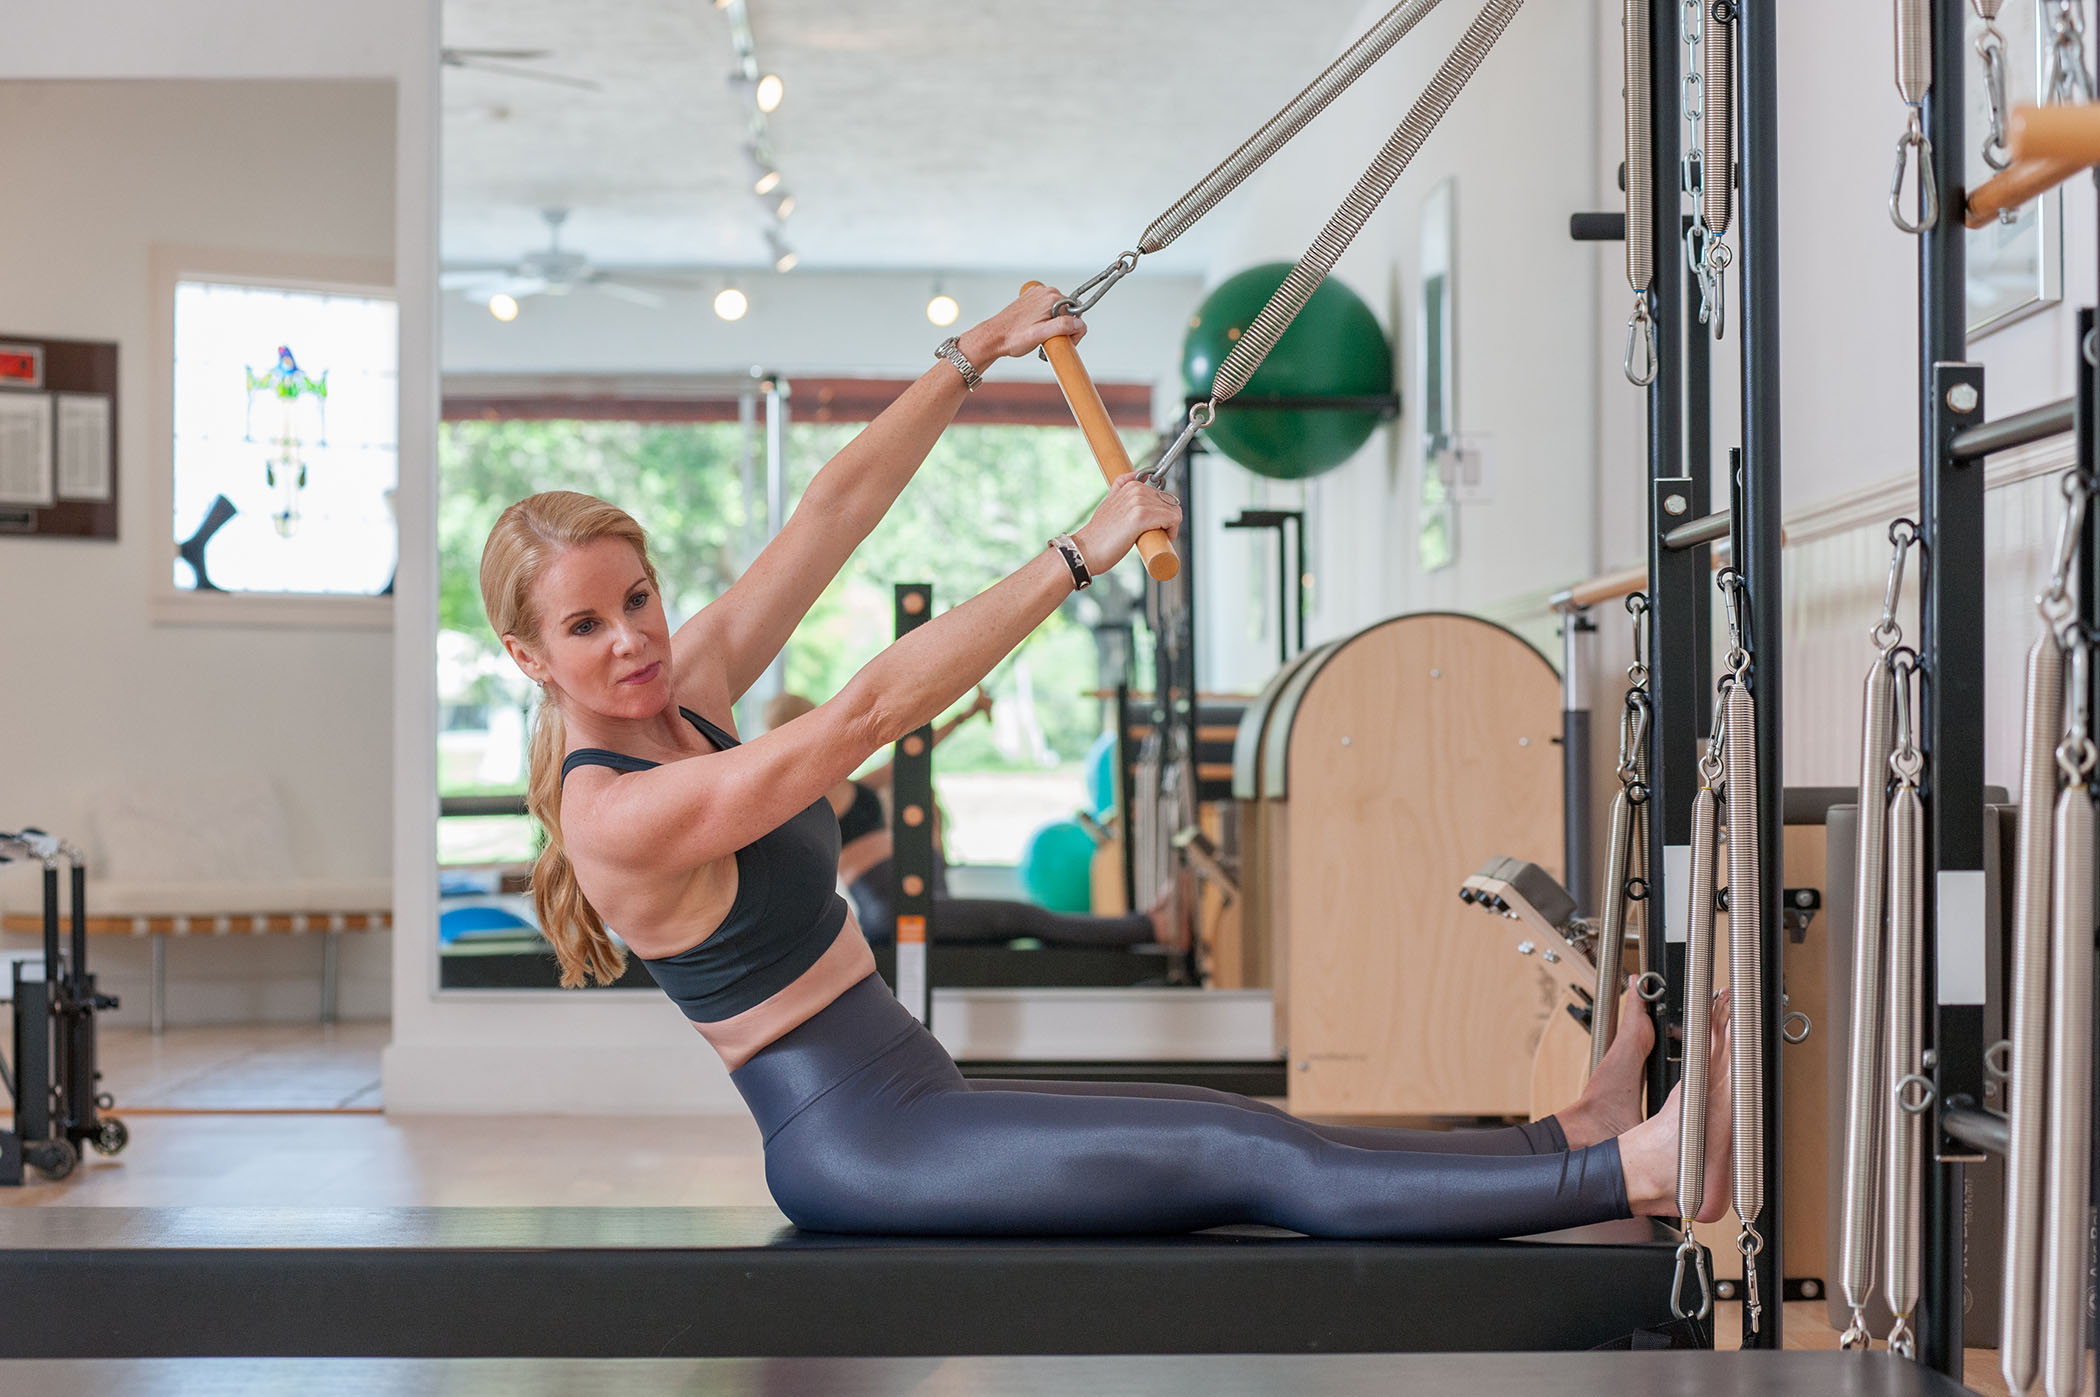 Pilates Works of Sarasota studio, a fully equipped Pilates studio in Sarasota, FL, including Pilates Stability Chairs, WALL UNIT, AND LADDER BARREL PILATES EQUIPMENT.